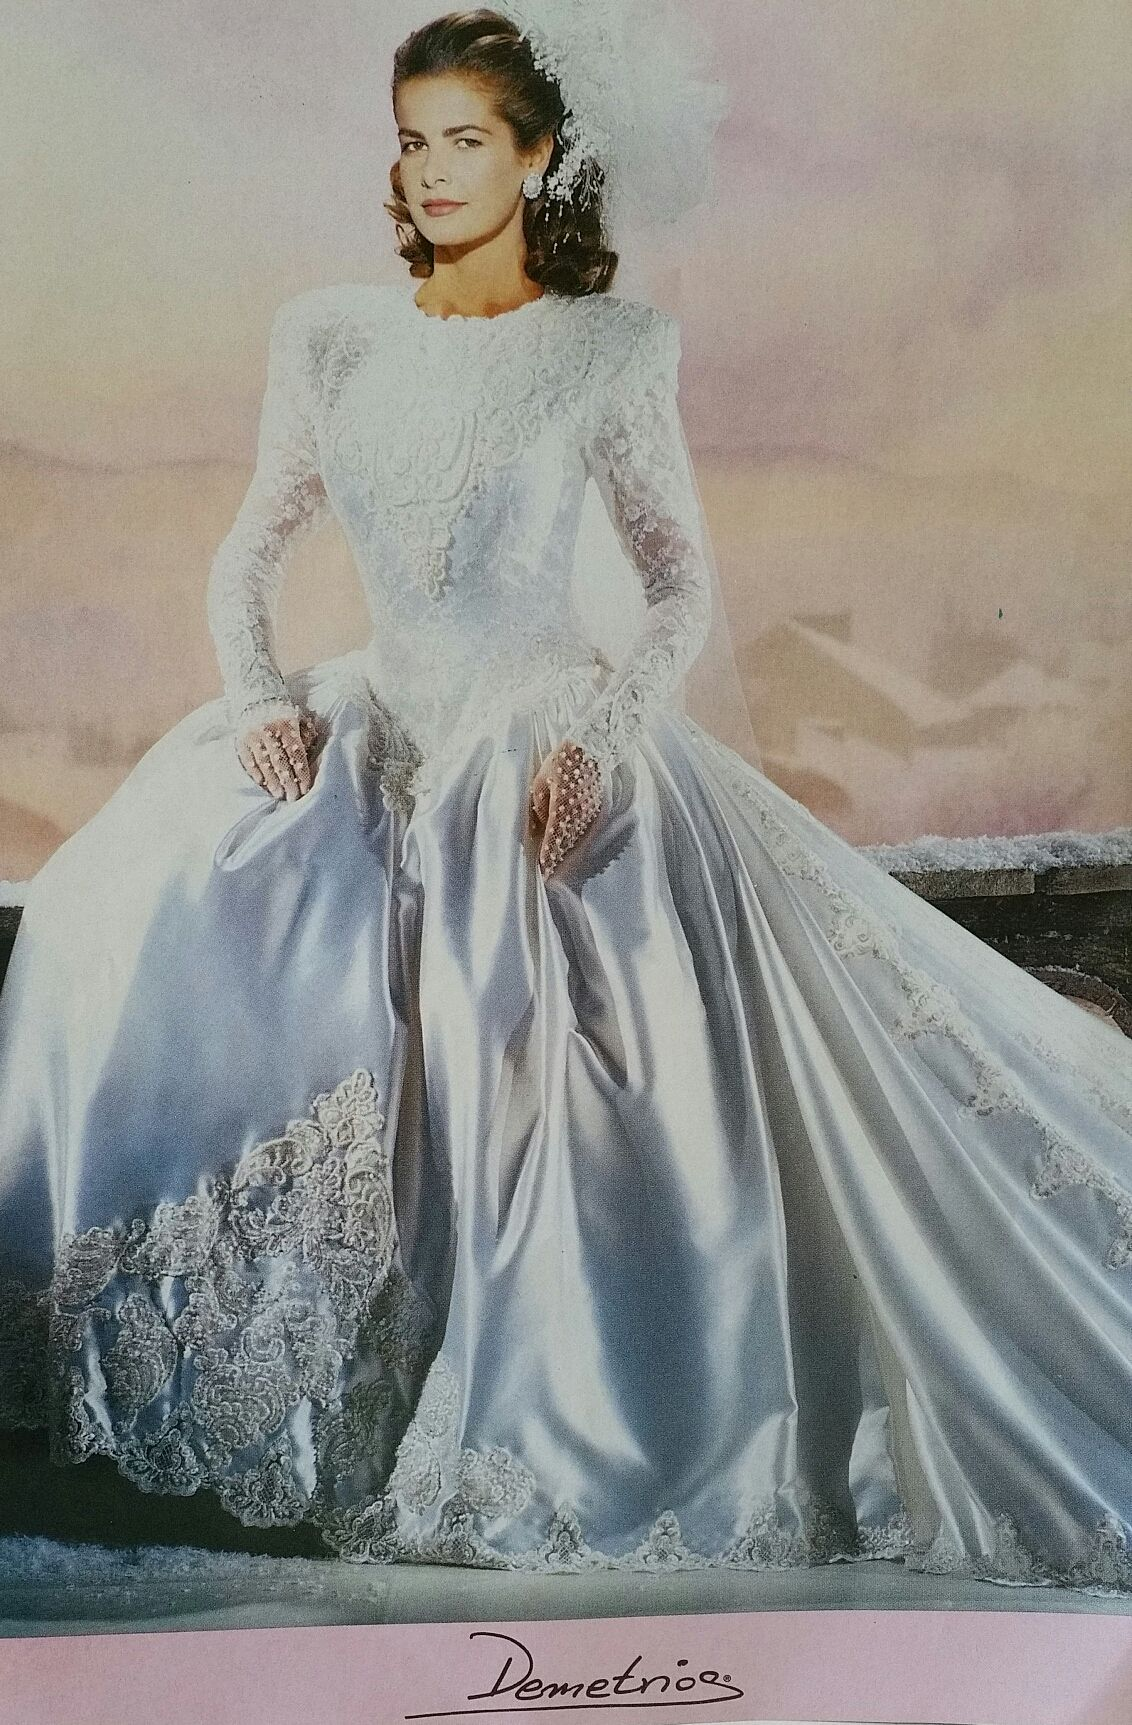 Demetrios demetrios gowns to over years old but still